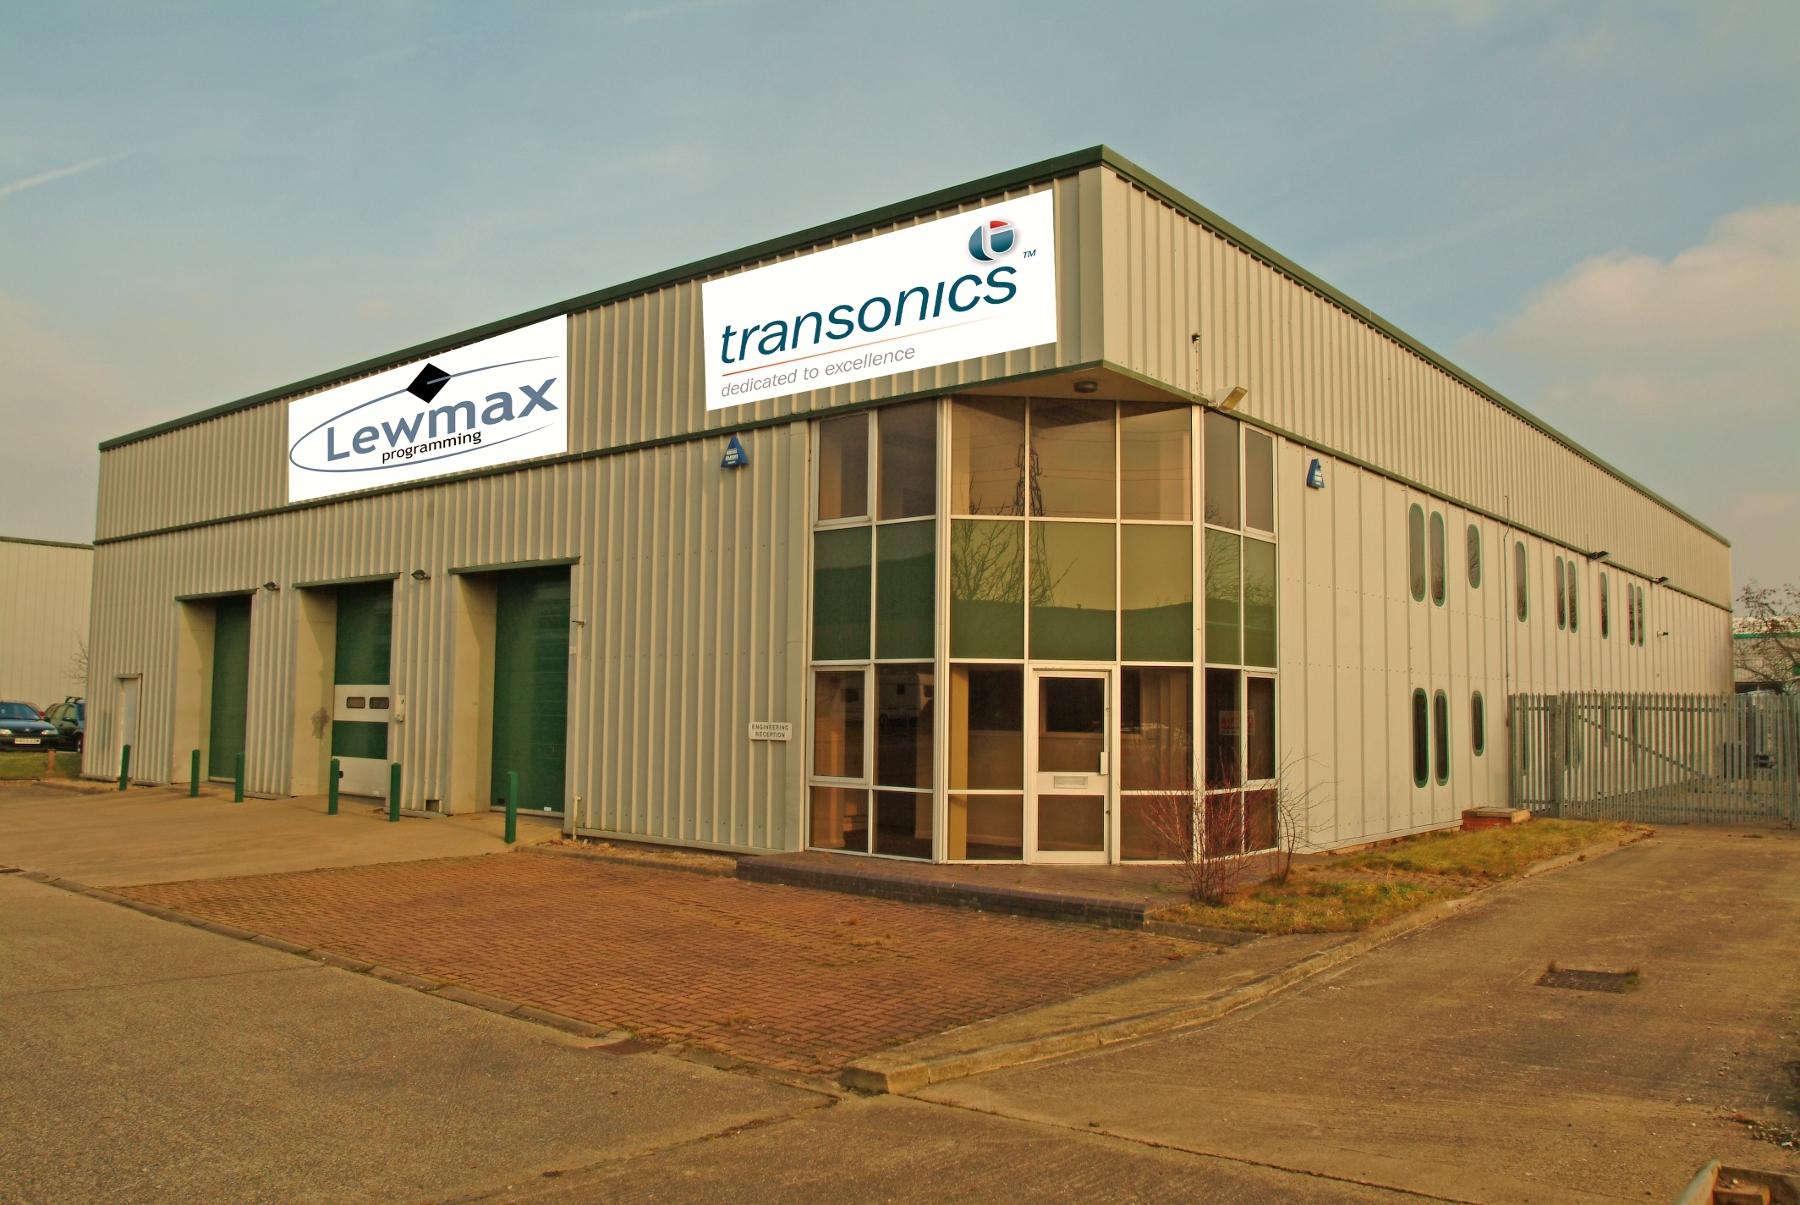 Transonics new warehouse and logistics centre doubles component distribution capacity - 100M components in stock across 13,000 product lines